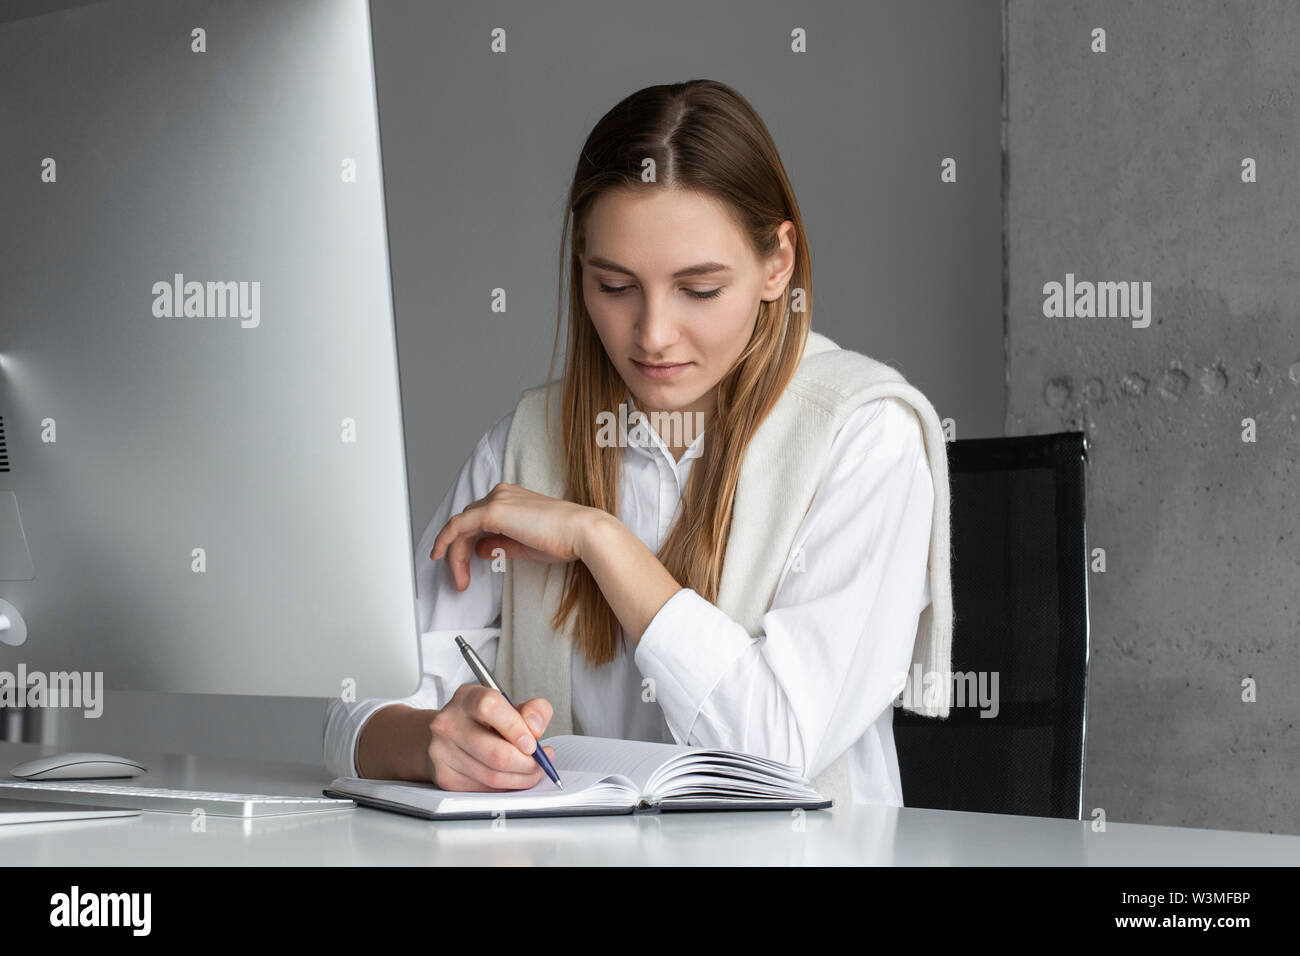 Businesswoman writing in notebook - Stock Image